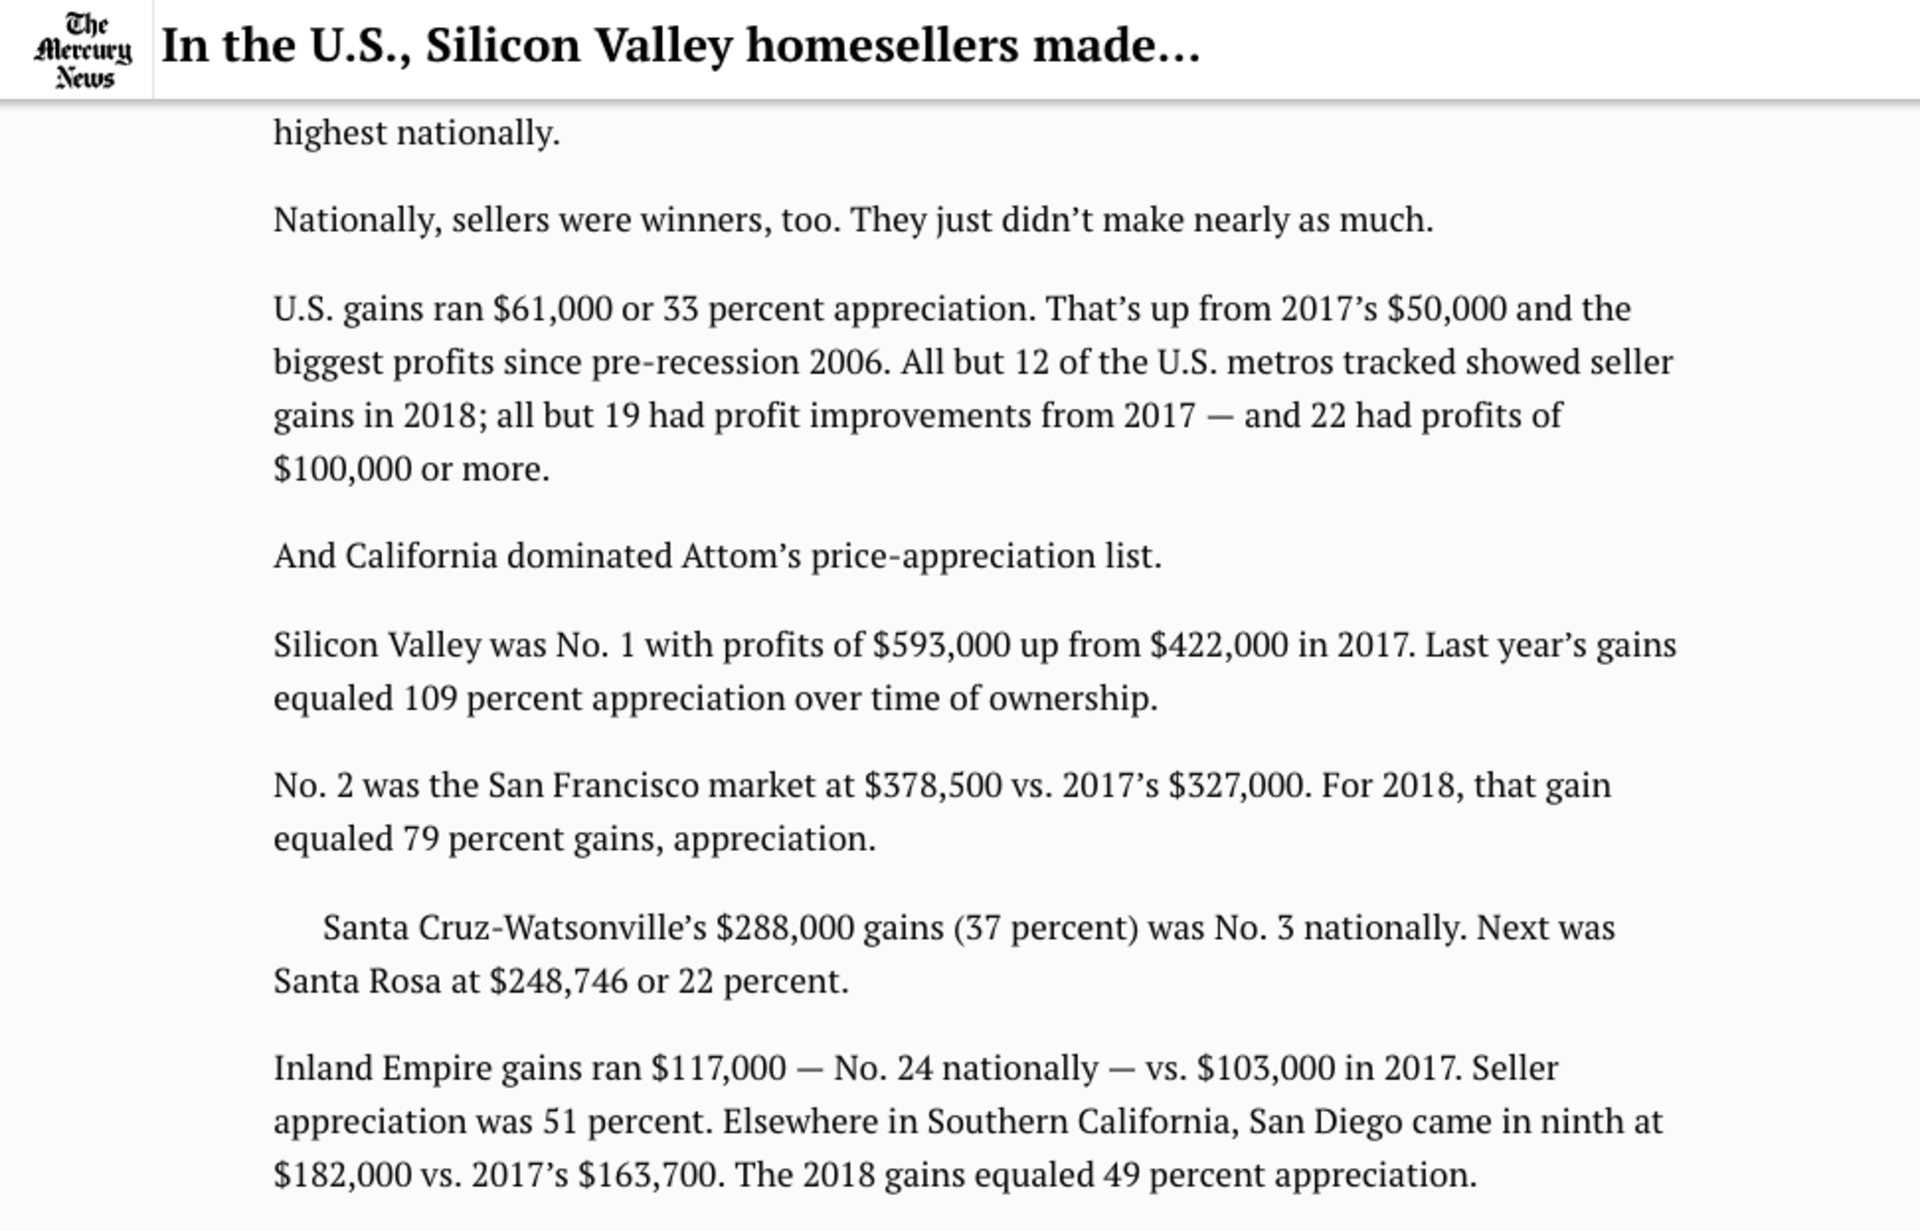 The Silicon Valley Secret